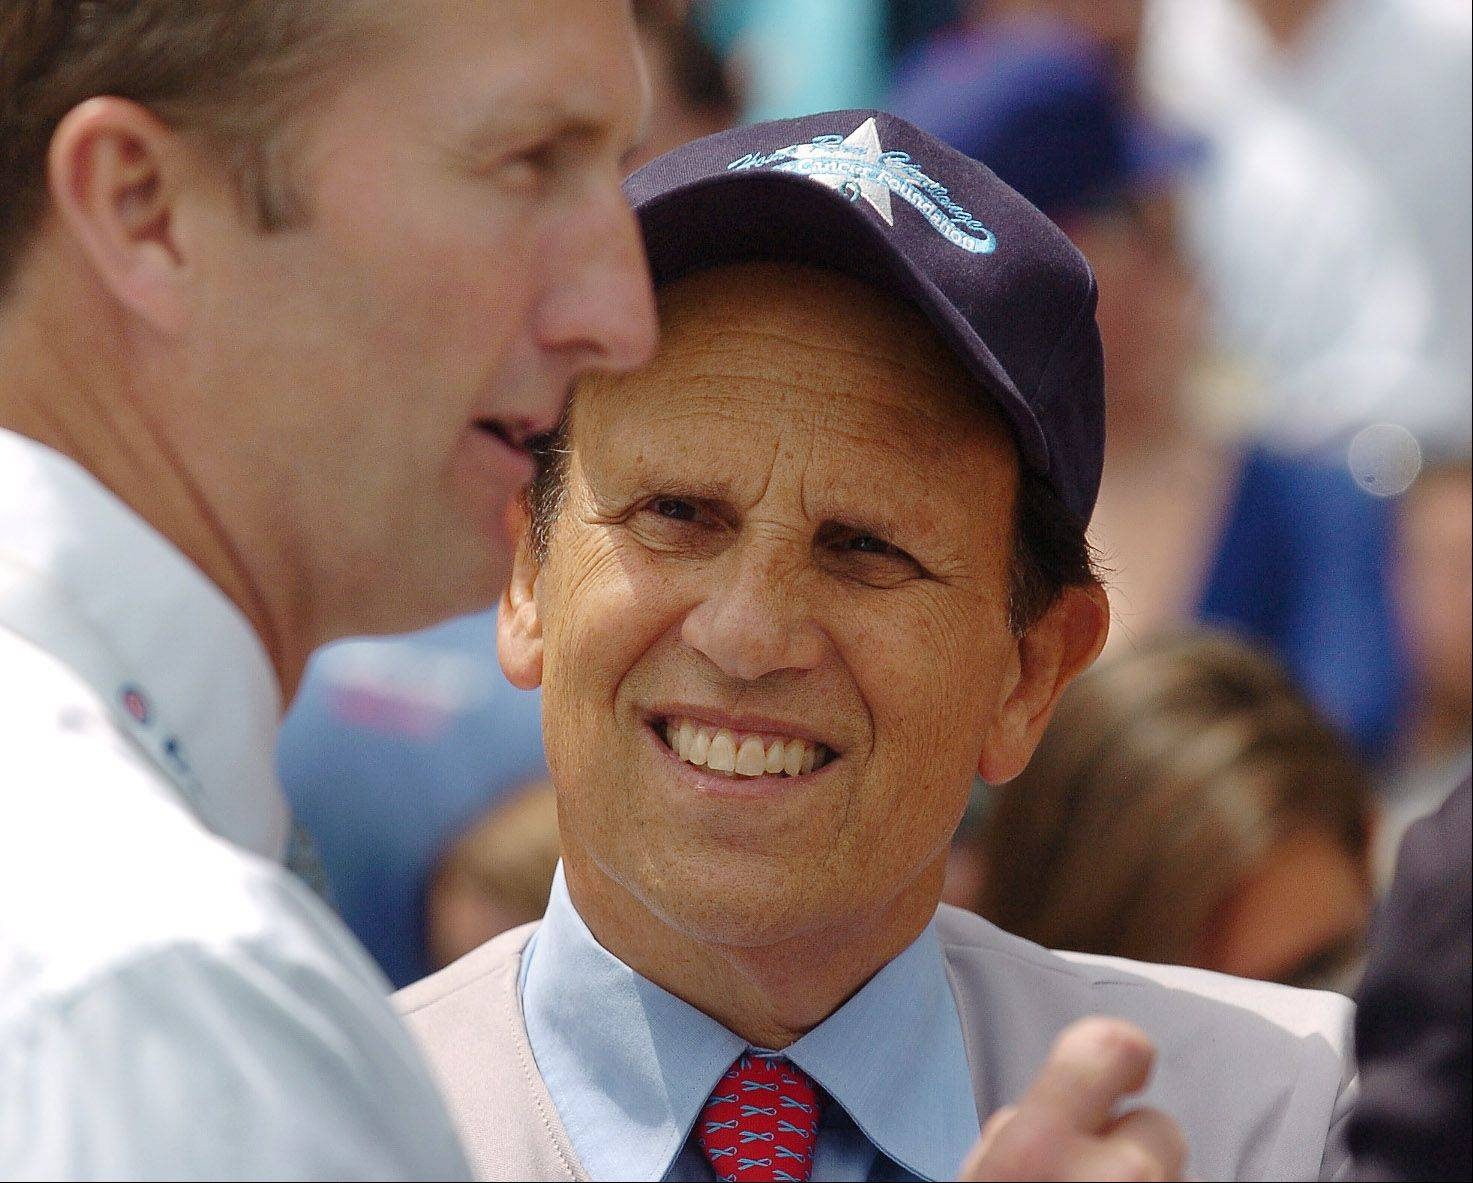 Michael Milken, right, talks with Crane Kenney of the Cubs before the Cubs vs. Yankees game at Wrigley Field.